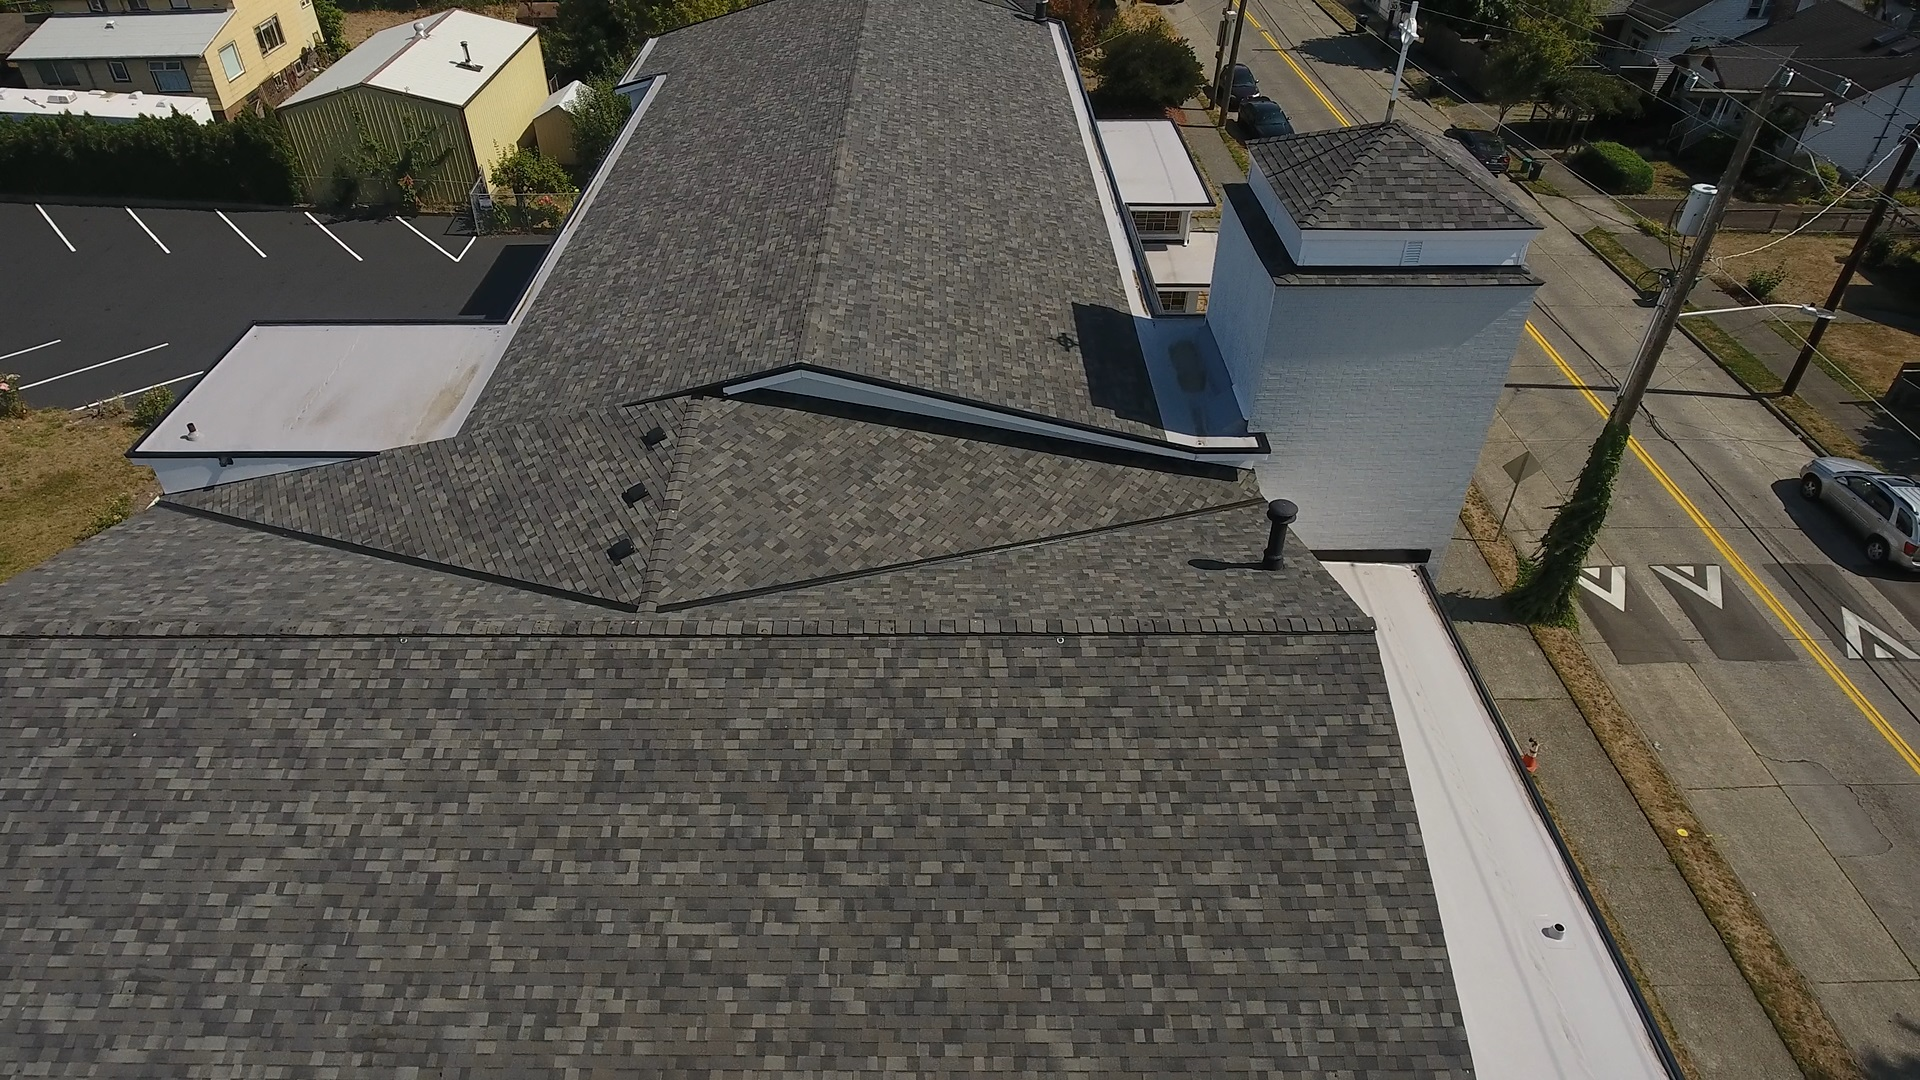 Church with Commercial Composite Shingle / Flat Roof in Seattle, Washington